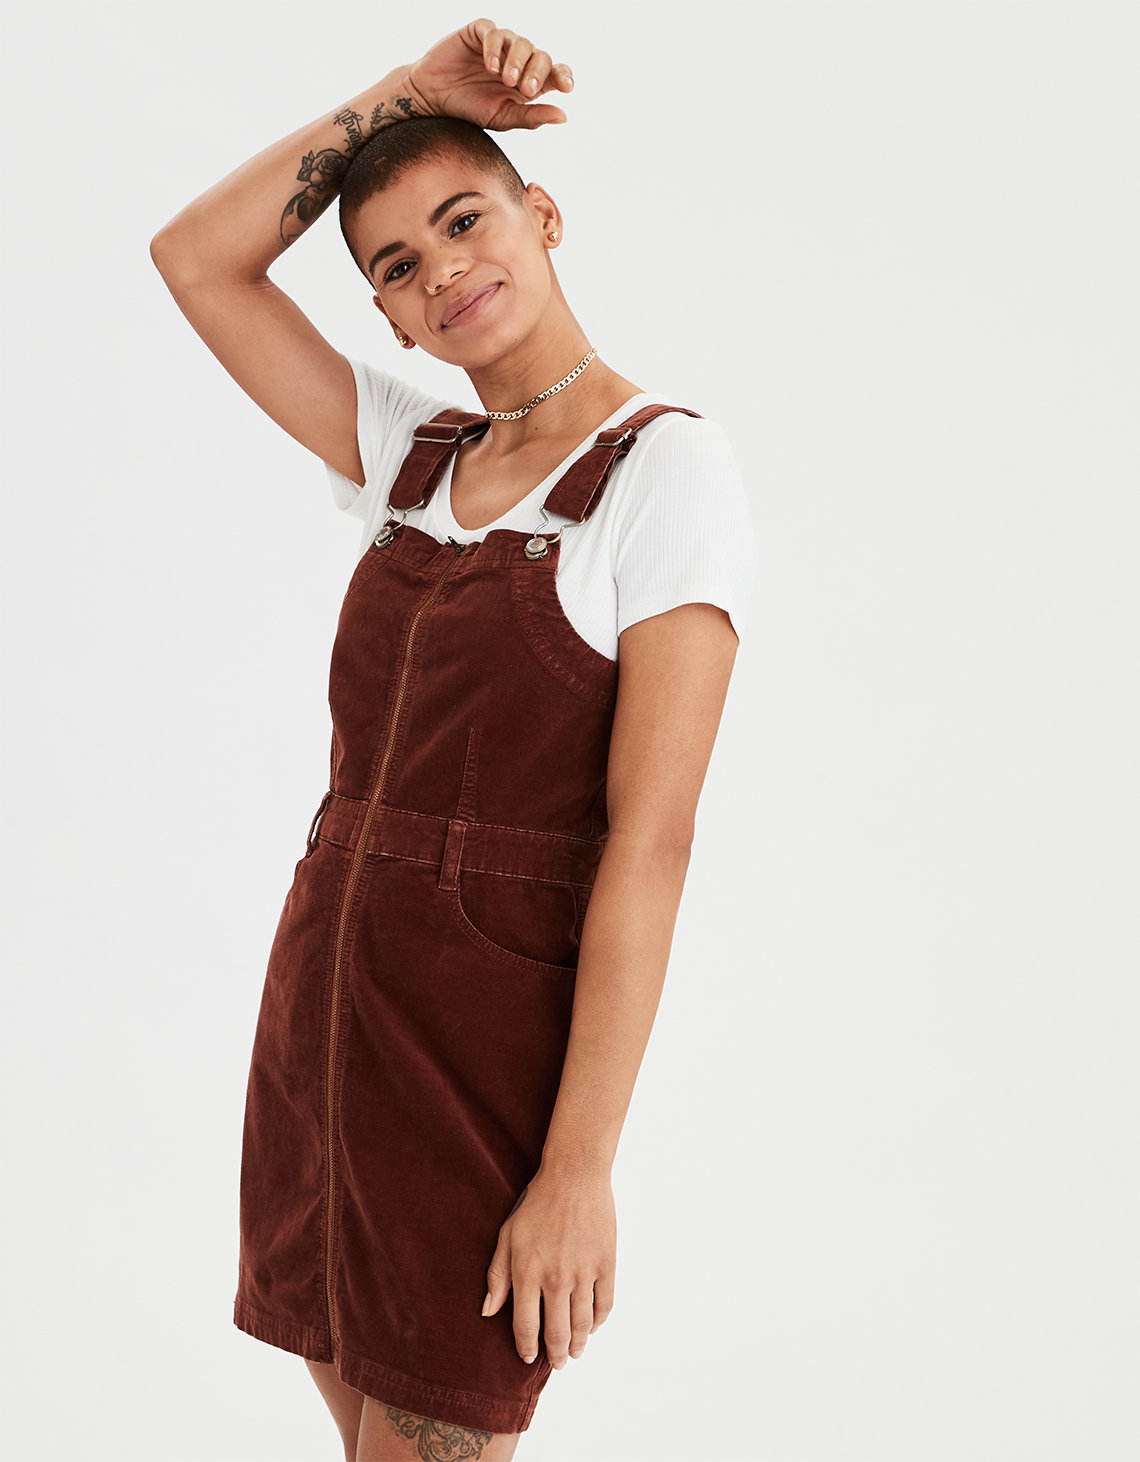 146891a5027c AE Corduroy Overall Dress. Placeholder image. Product Image